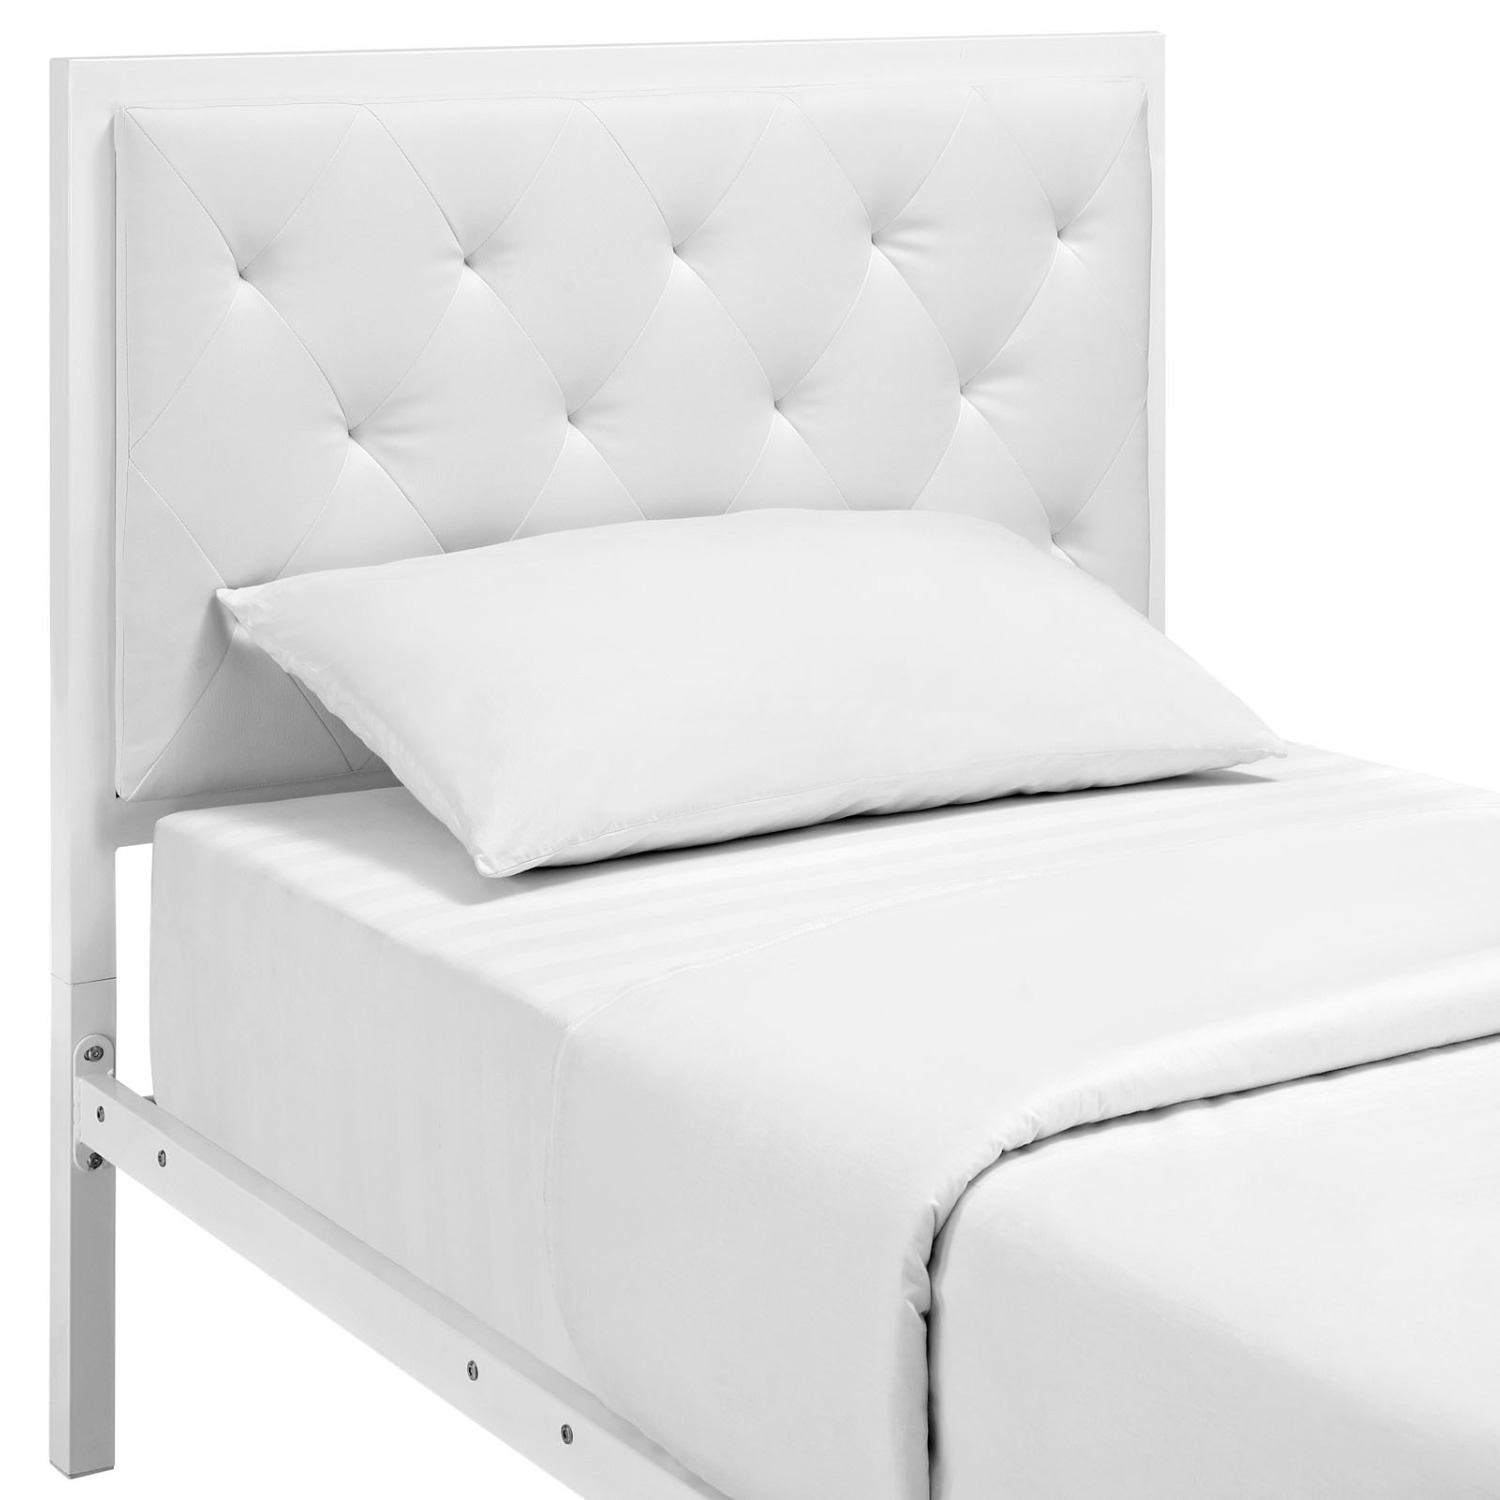 Twin Bed In White Steel Frame & Tufted Headboard - image-4